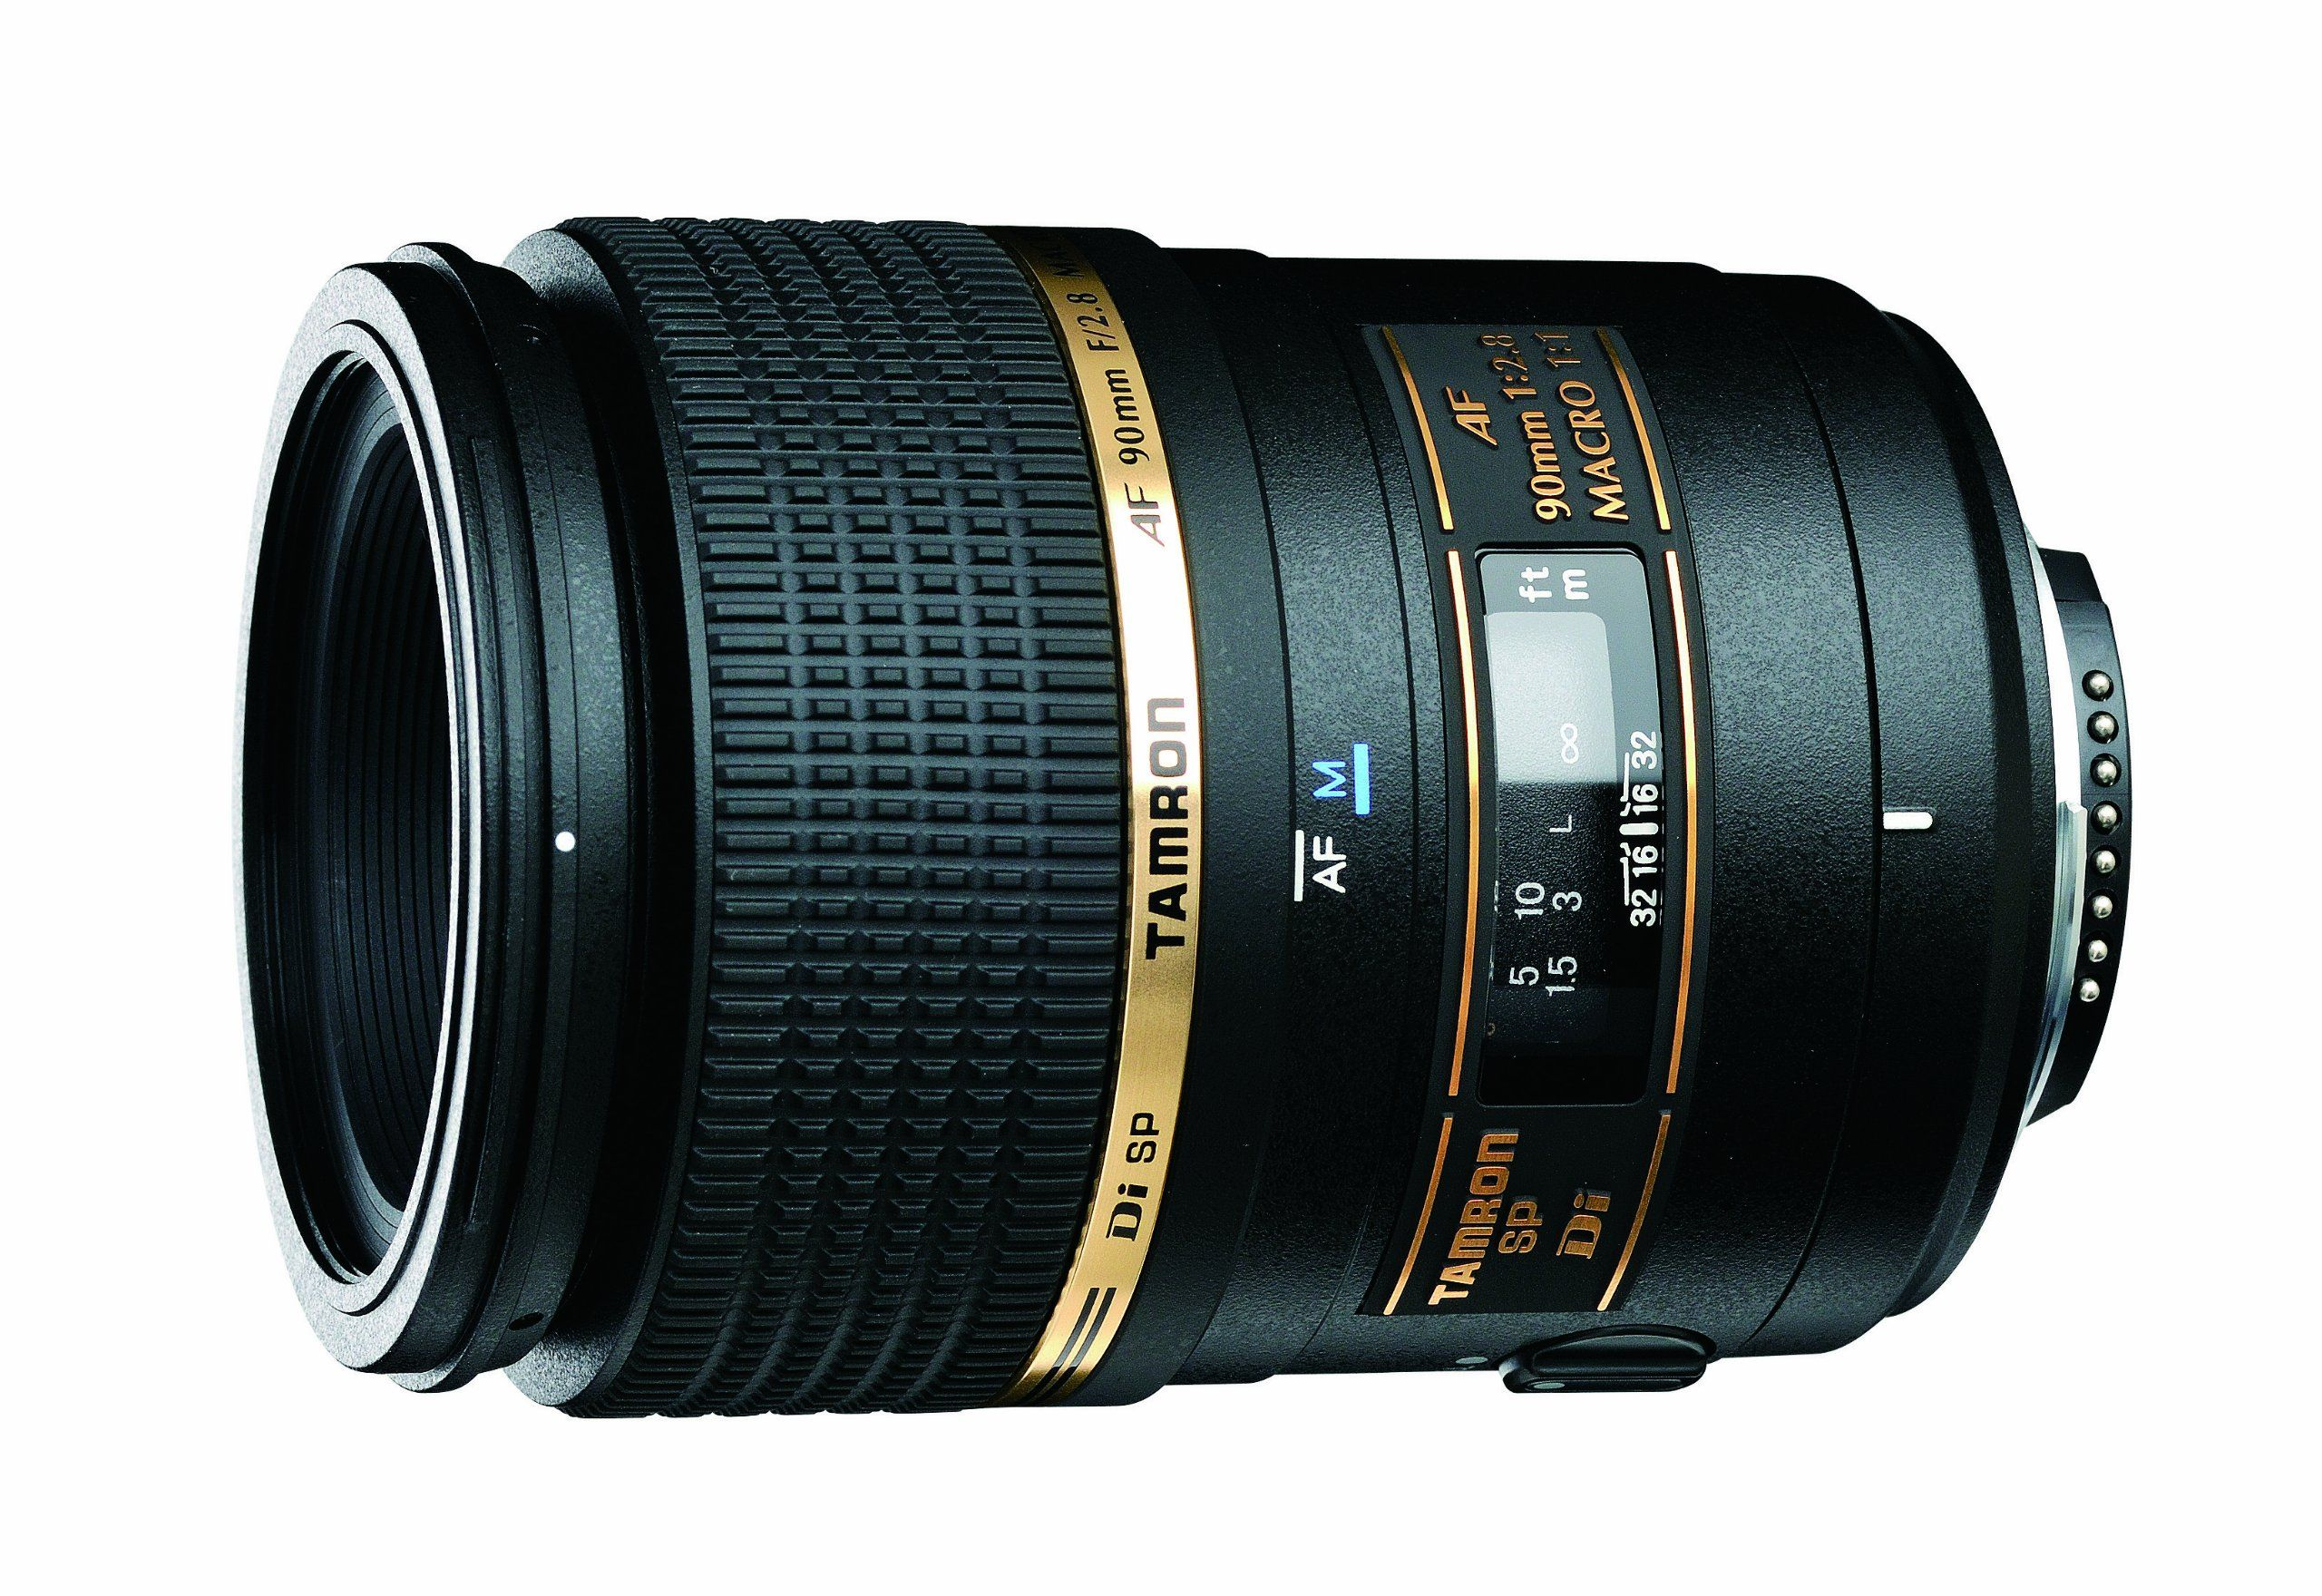 Macro Lens Tamron AF 90mm f/2.8 Di SP AF/MF 1:1 Macro Lens for Nikon Digital SLR Cameras